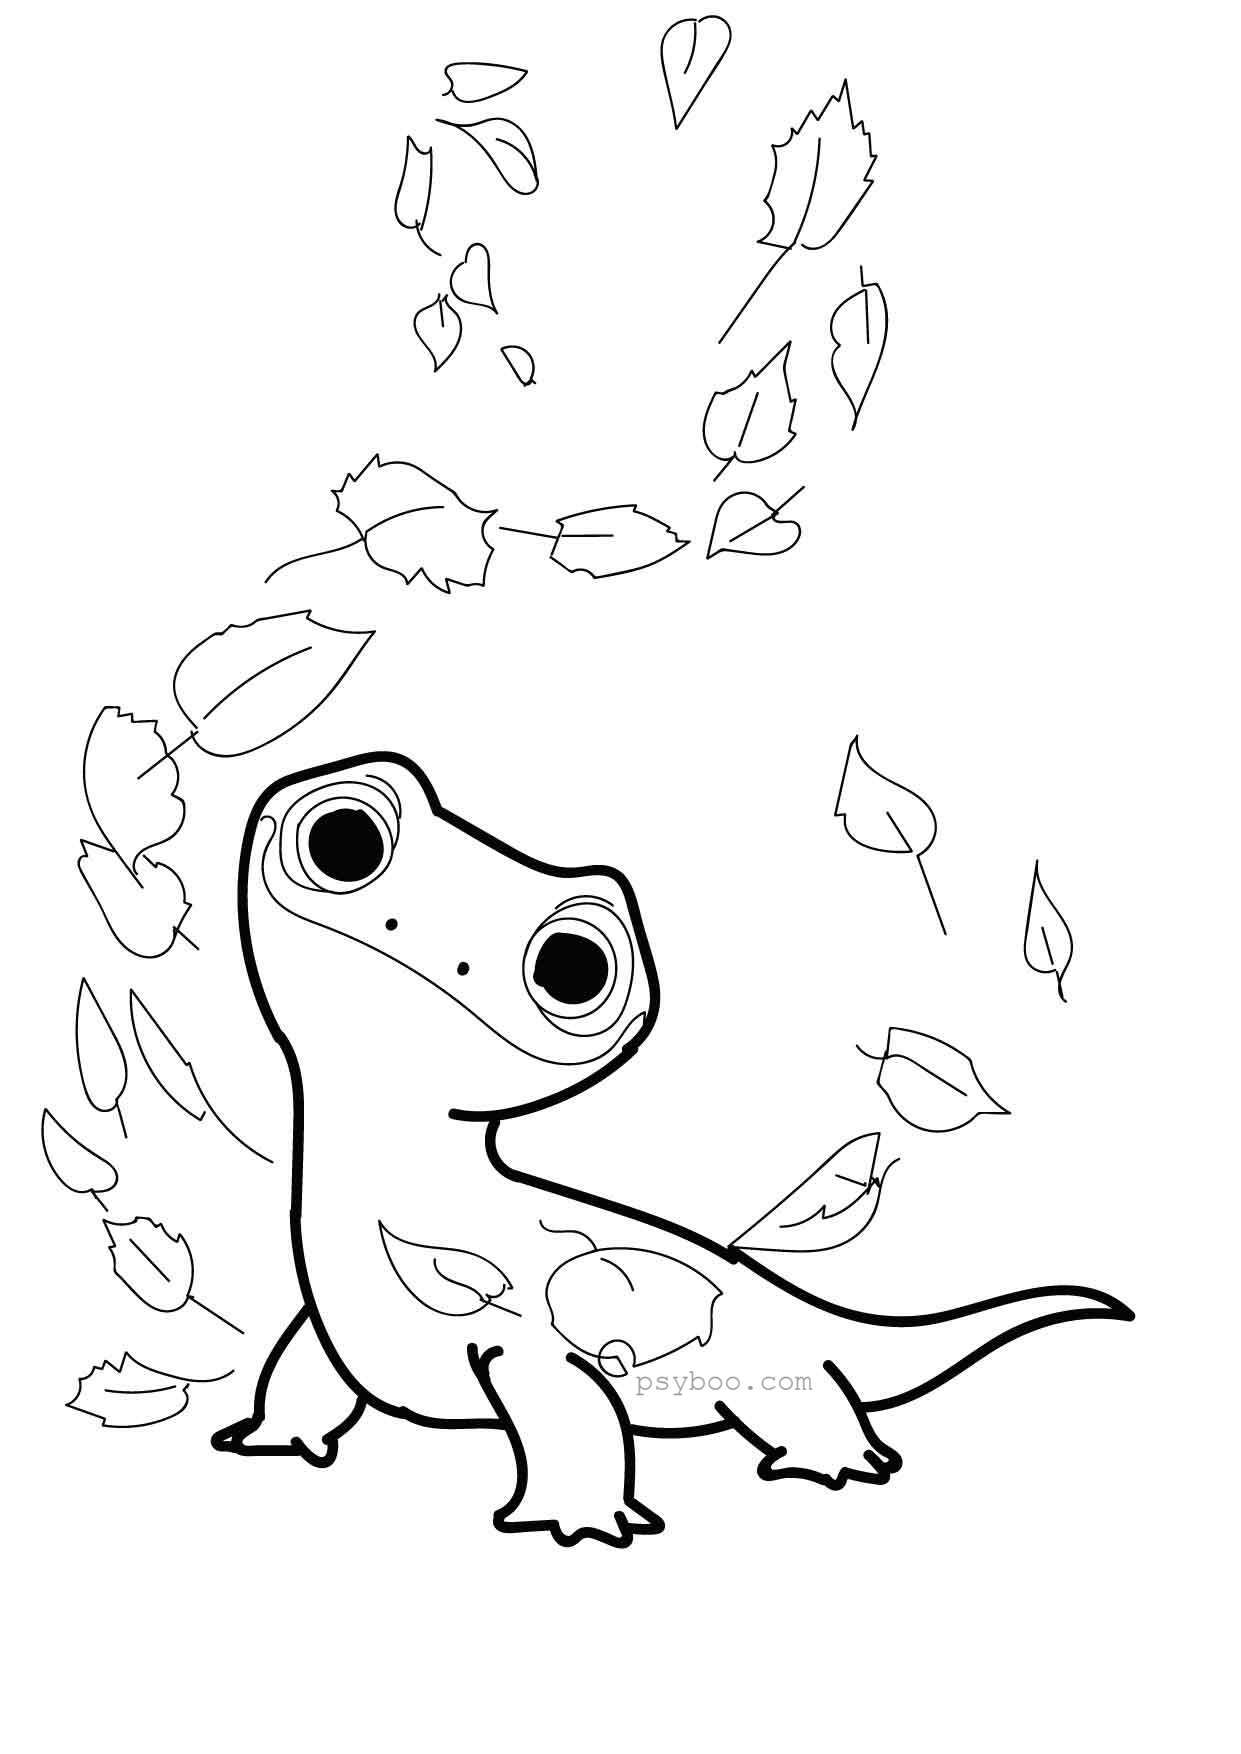 Bruni Lizard Frozen 2 Coloring Page In 2020 Elsa Coloring Pages Disney Princess Coloring Pages Dragon Coloring Page